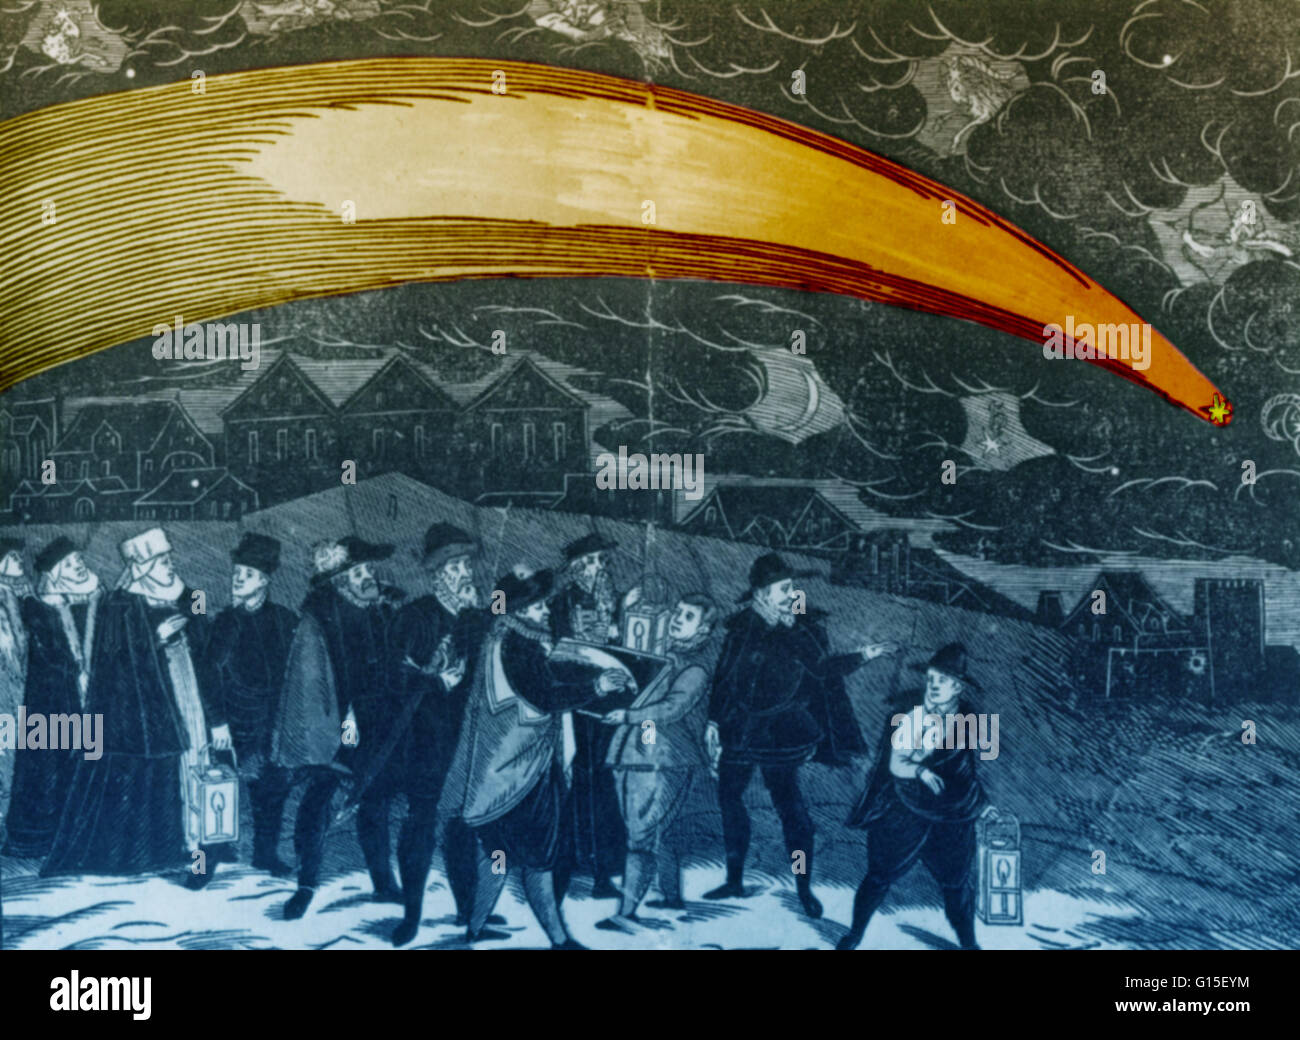 The Great Comet of 1577 was a comet that passed close to Earth during the  year 1577 AD. It was viewed by people all over Europe, including famous  Danish ...